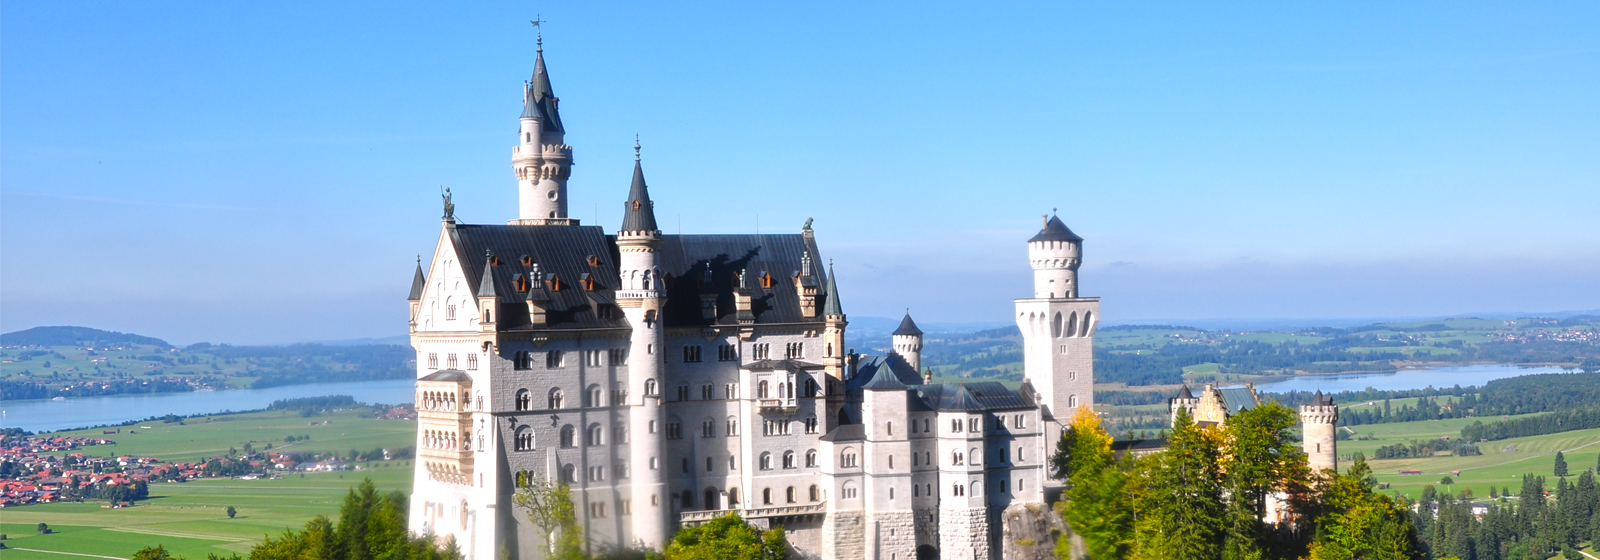 Neuschwanstein Castle Tour during Oktoberfest